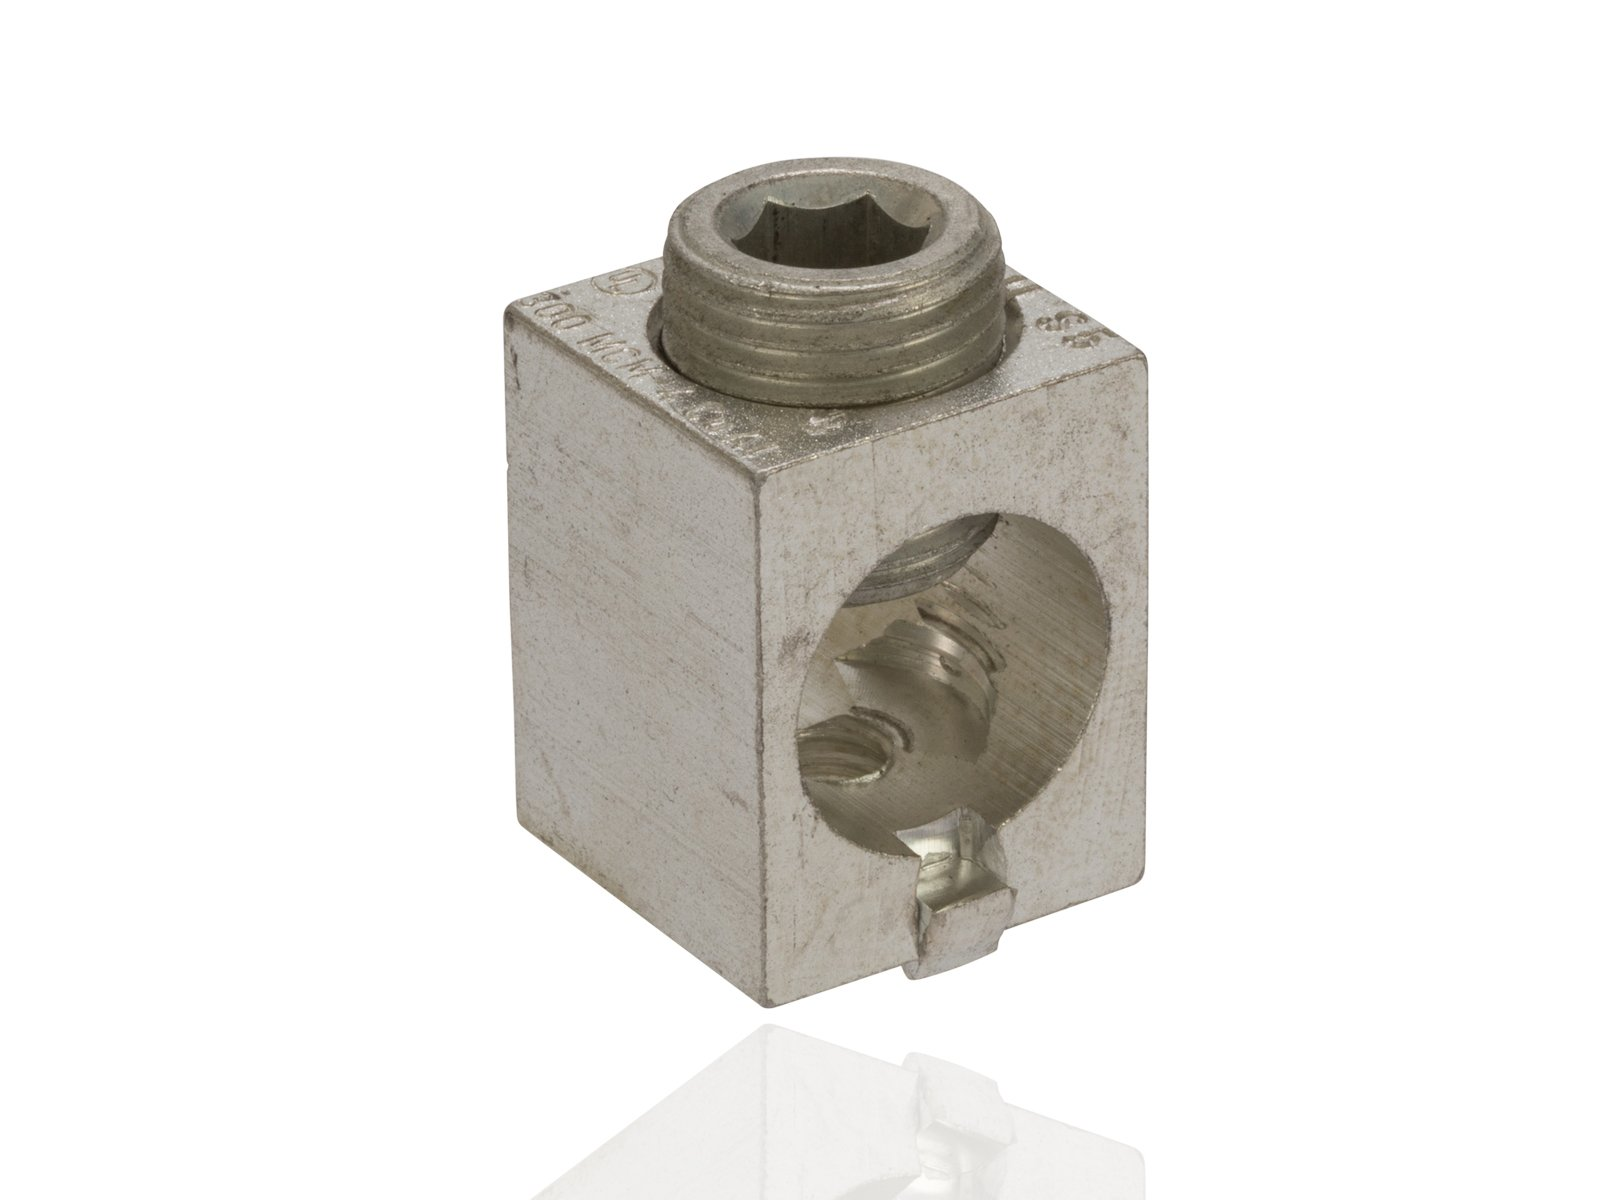 Dual Rated Mechanical Aluminum Box Connector with ''Turn Prevent'', 300 MCM-6 Wire Range, 1/4''-20'' Mounting Hole, 0.88'' Width, 1.09'' Height, 0.88'' Length